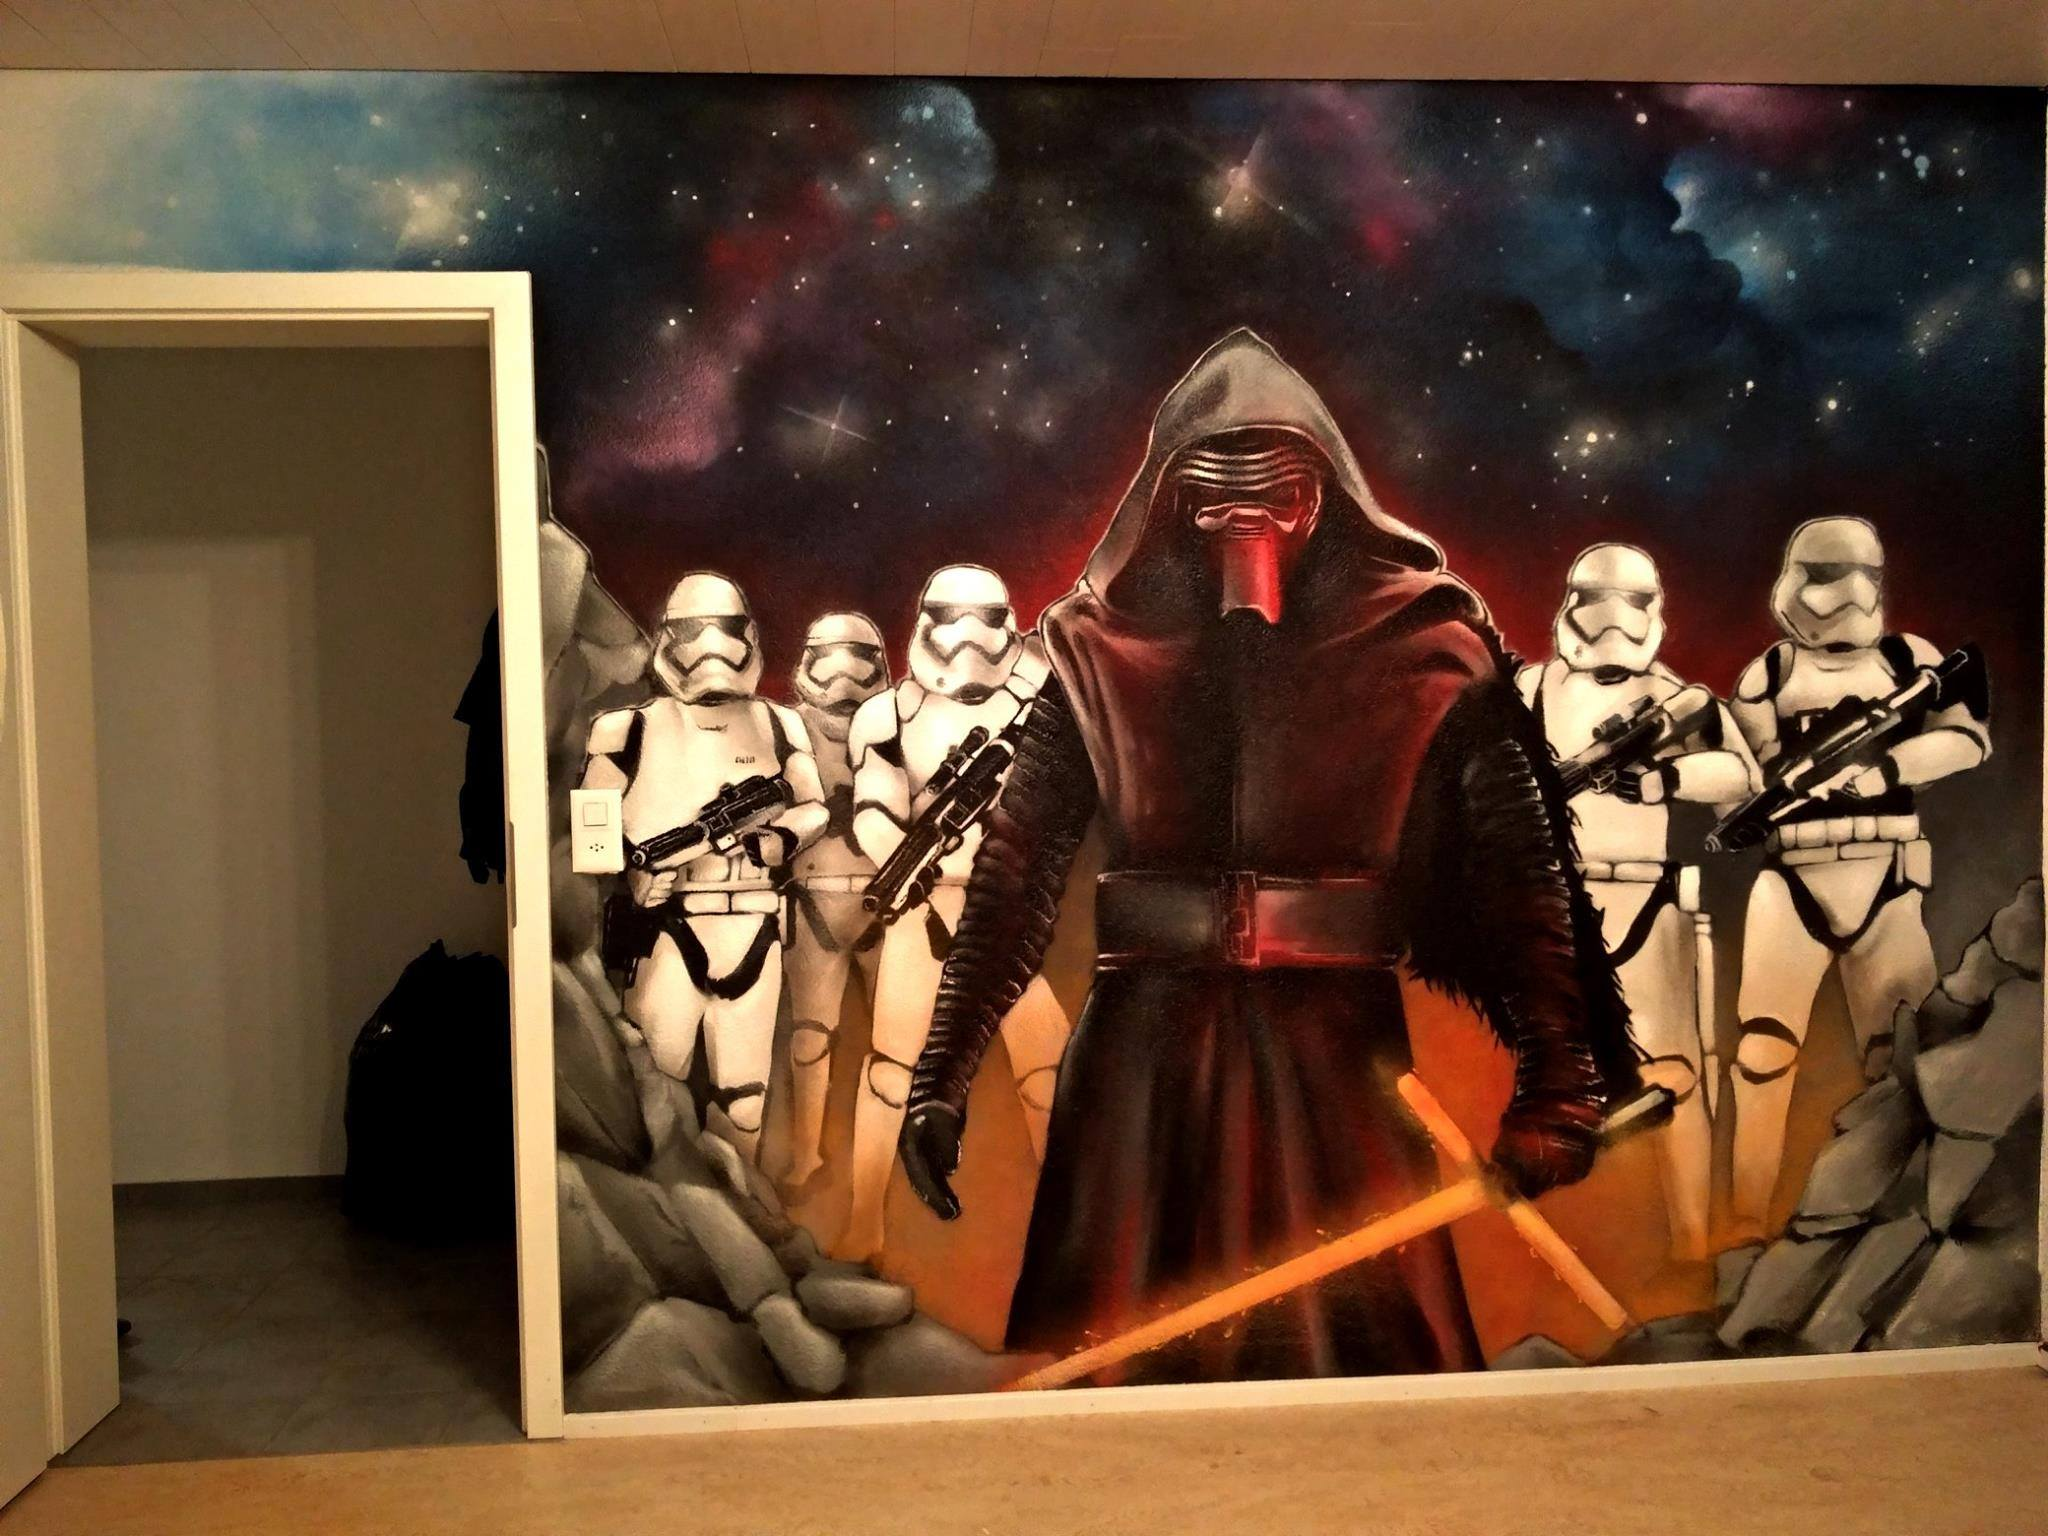 graffiti-star-wars